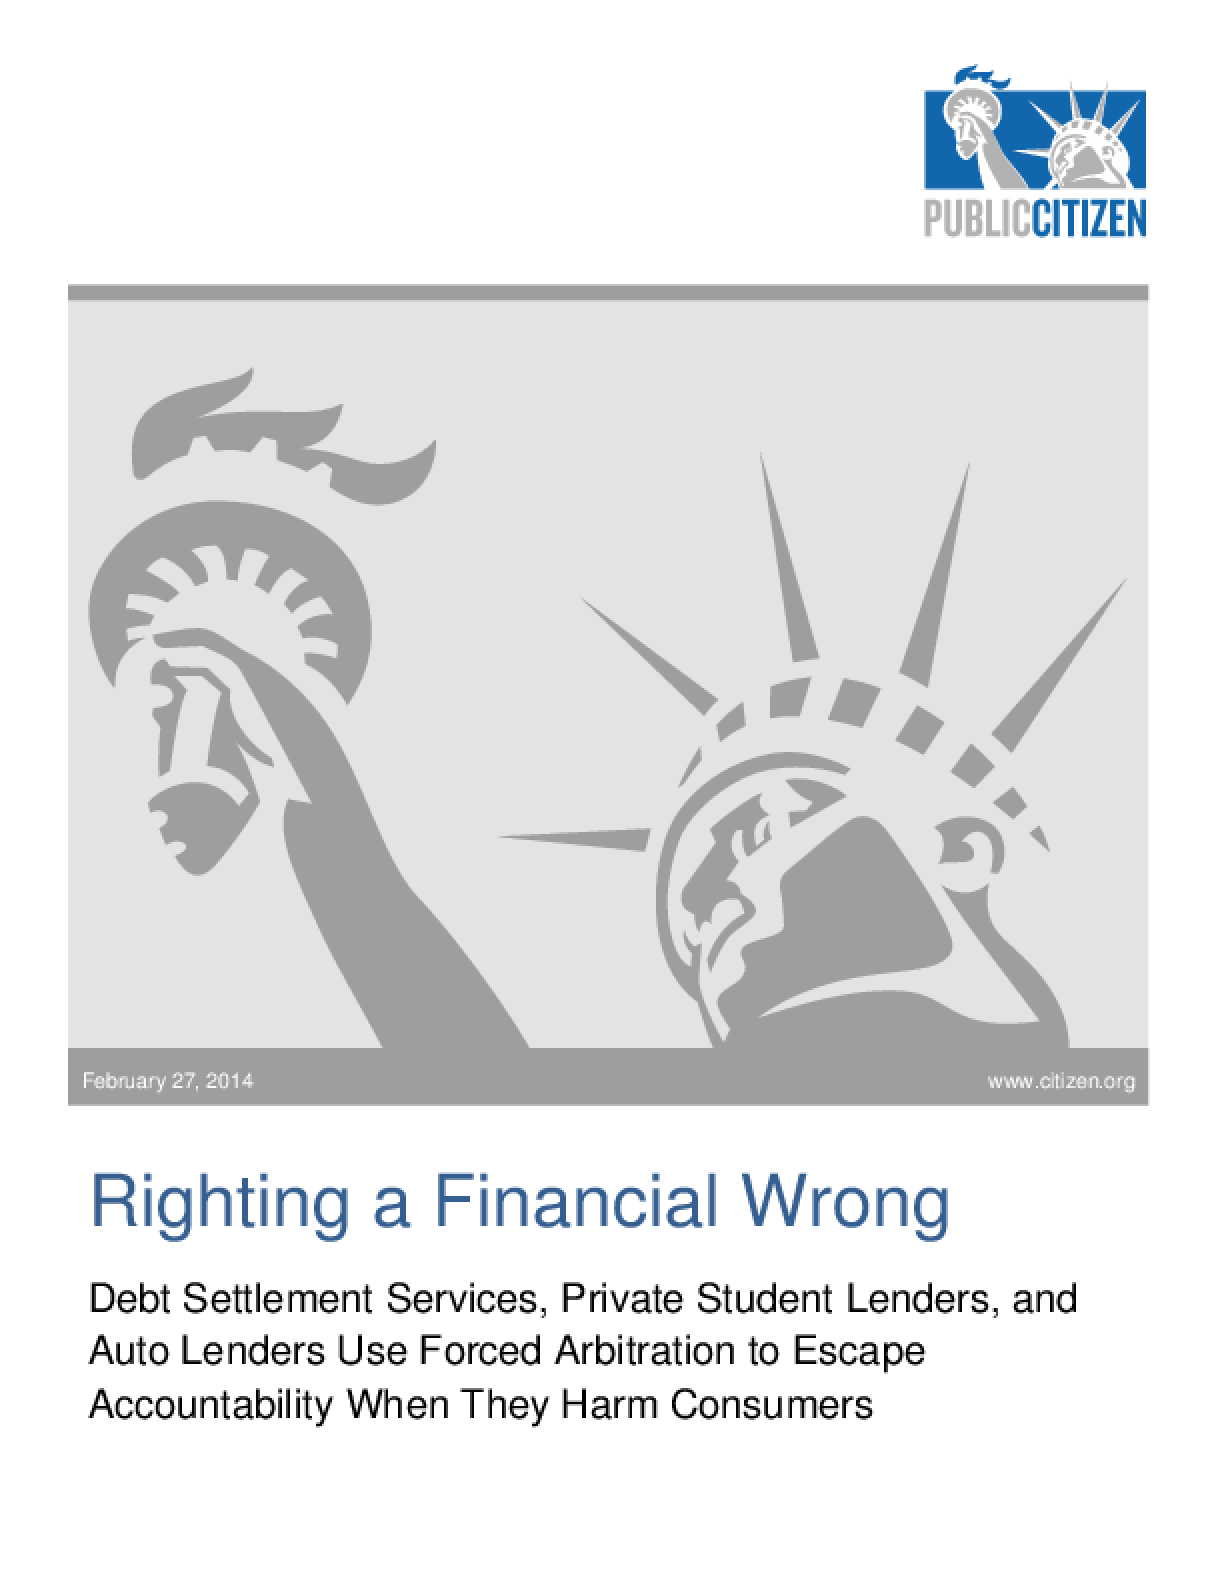 Righting a Financial Wrong: Debt Settlement Services, Private Student Lenders, and Auto Lenders Use Forced Arbitration to Escape Accountability When They Harm Consumers